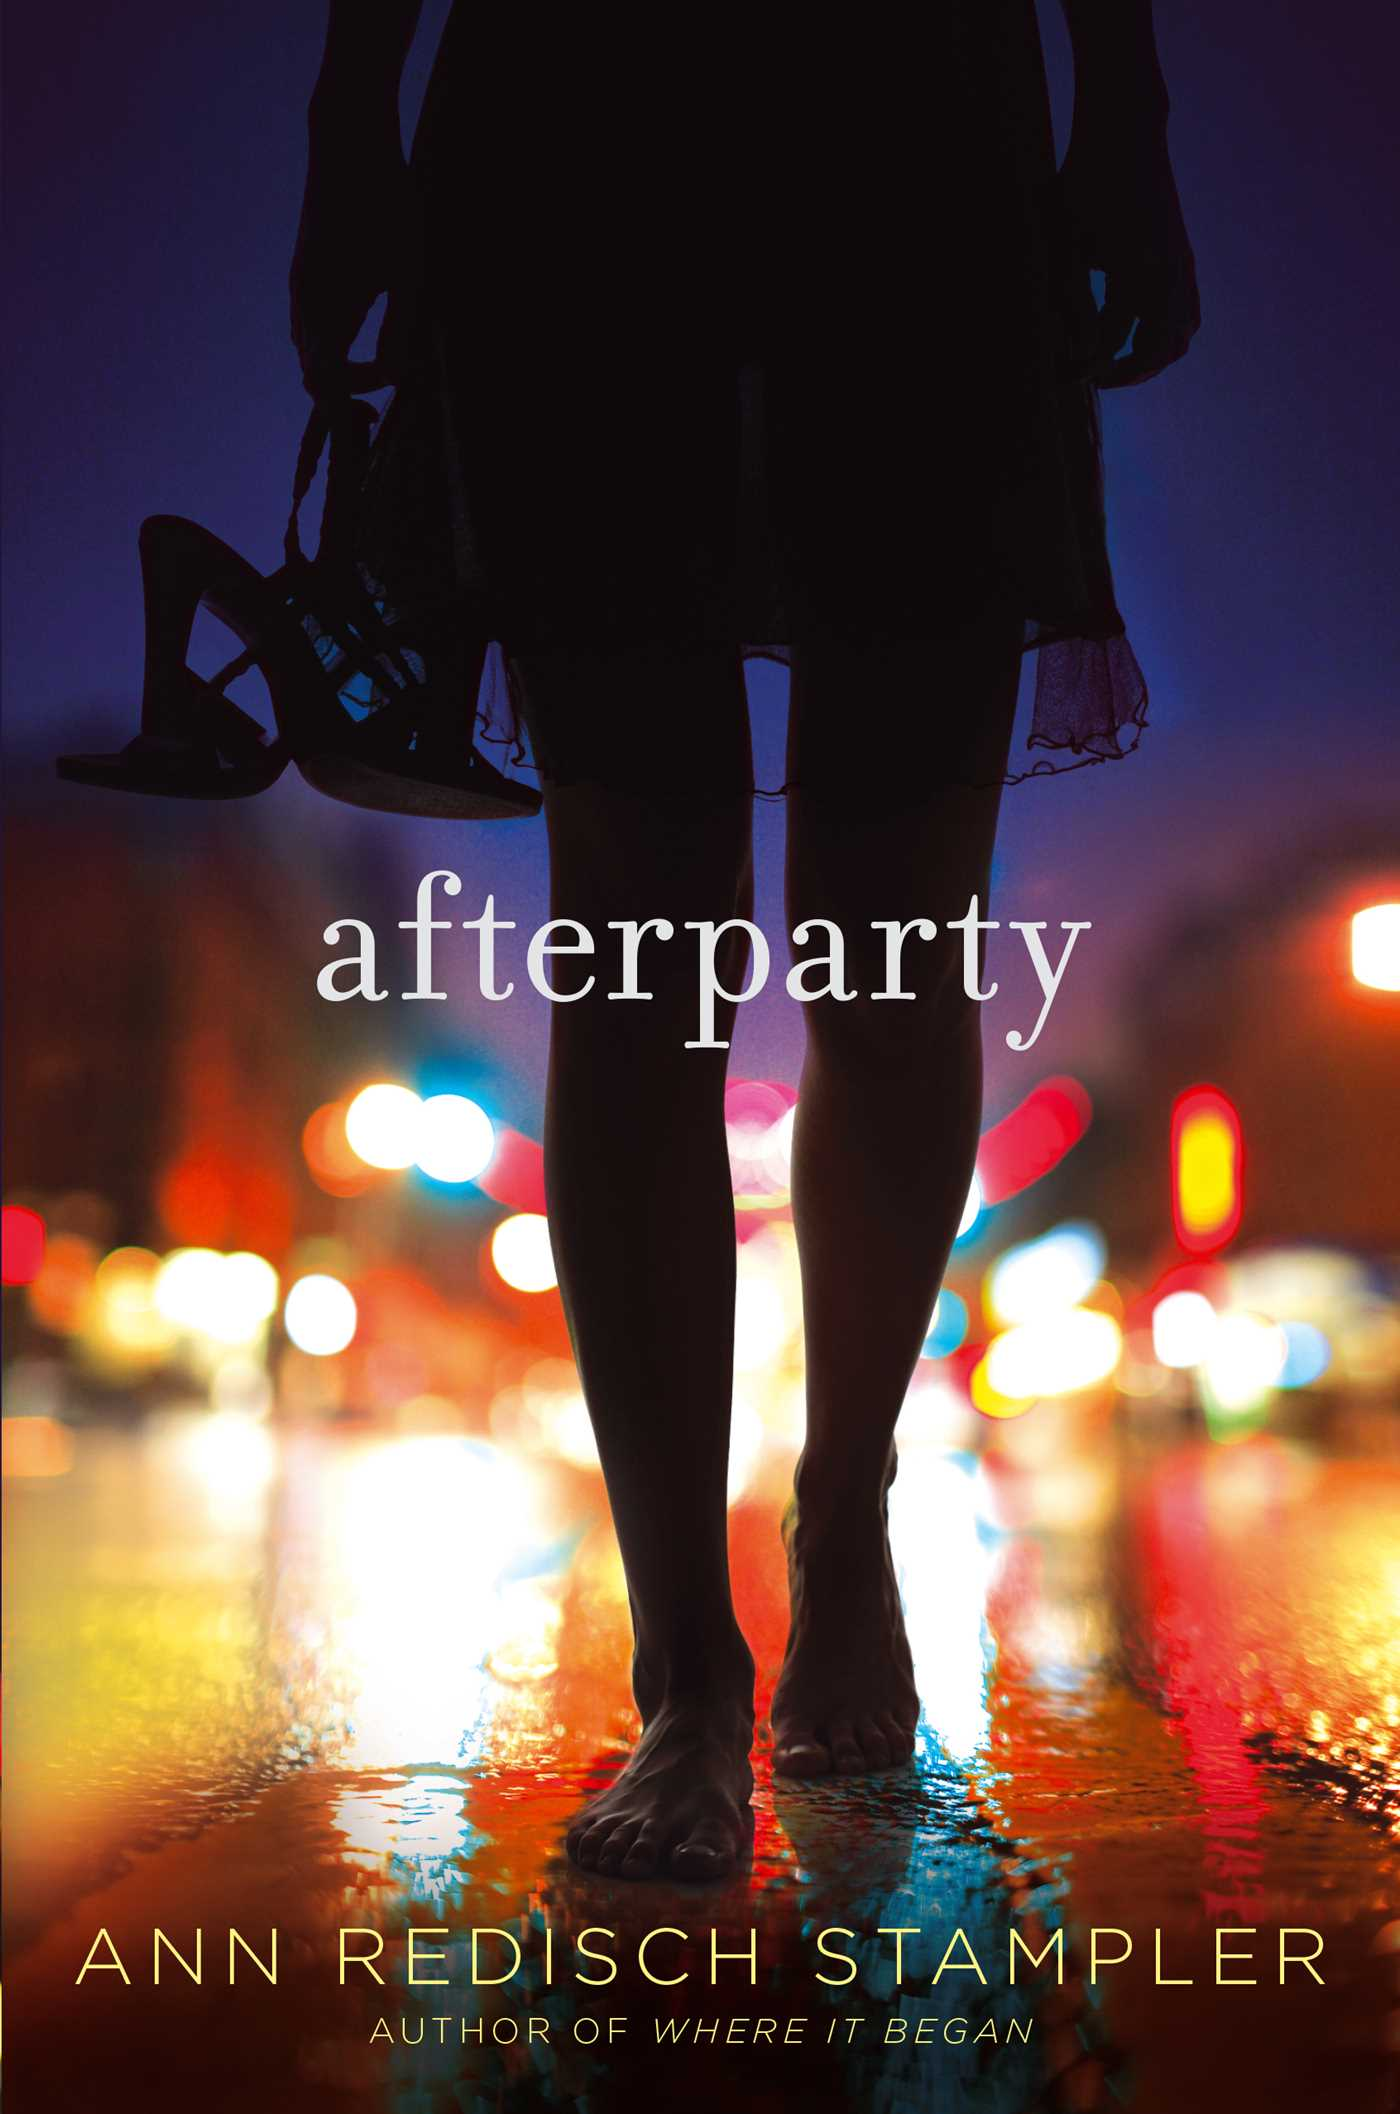 Afterparty 9781442423268 hr